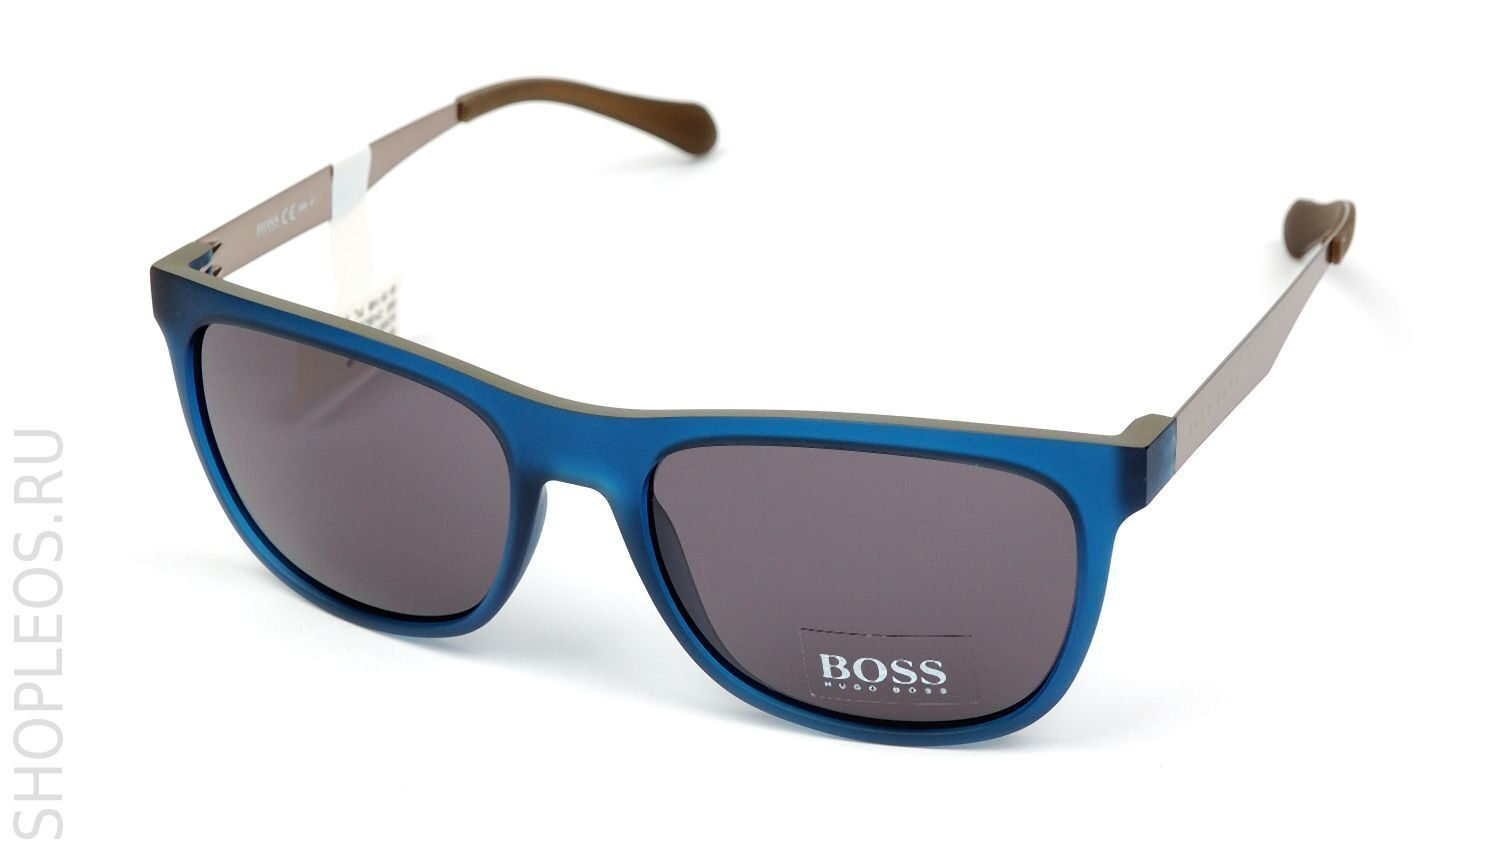 HUGO BOSS MAN BOSS 0868/S 05E